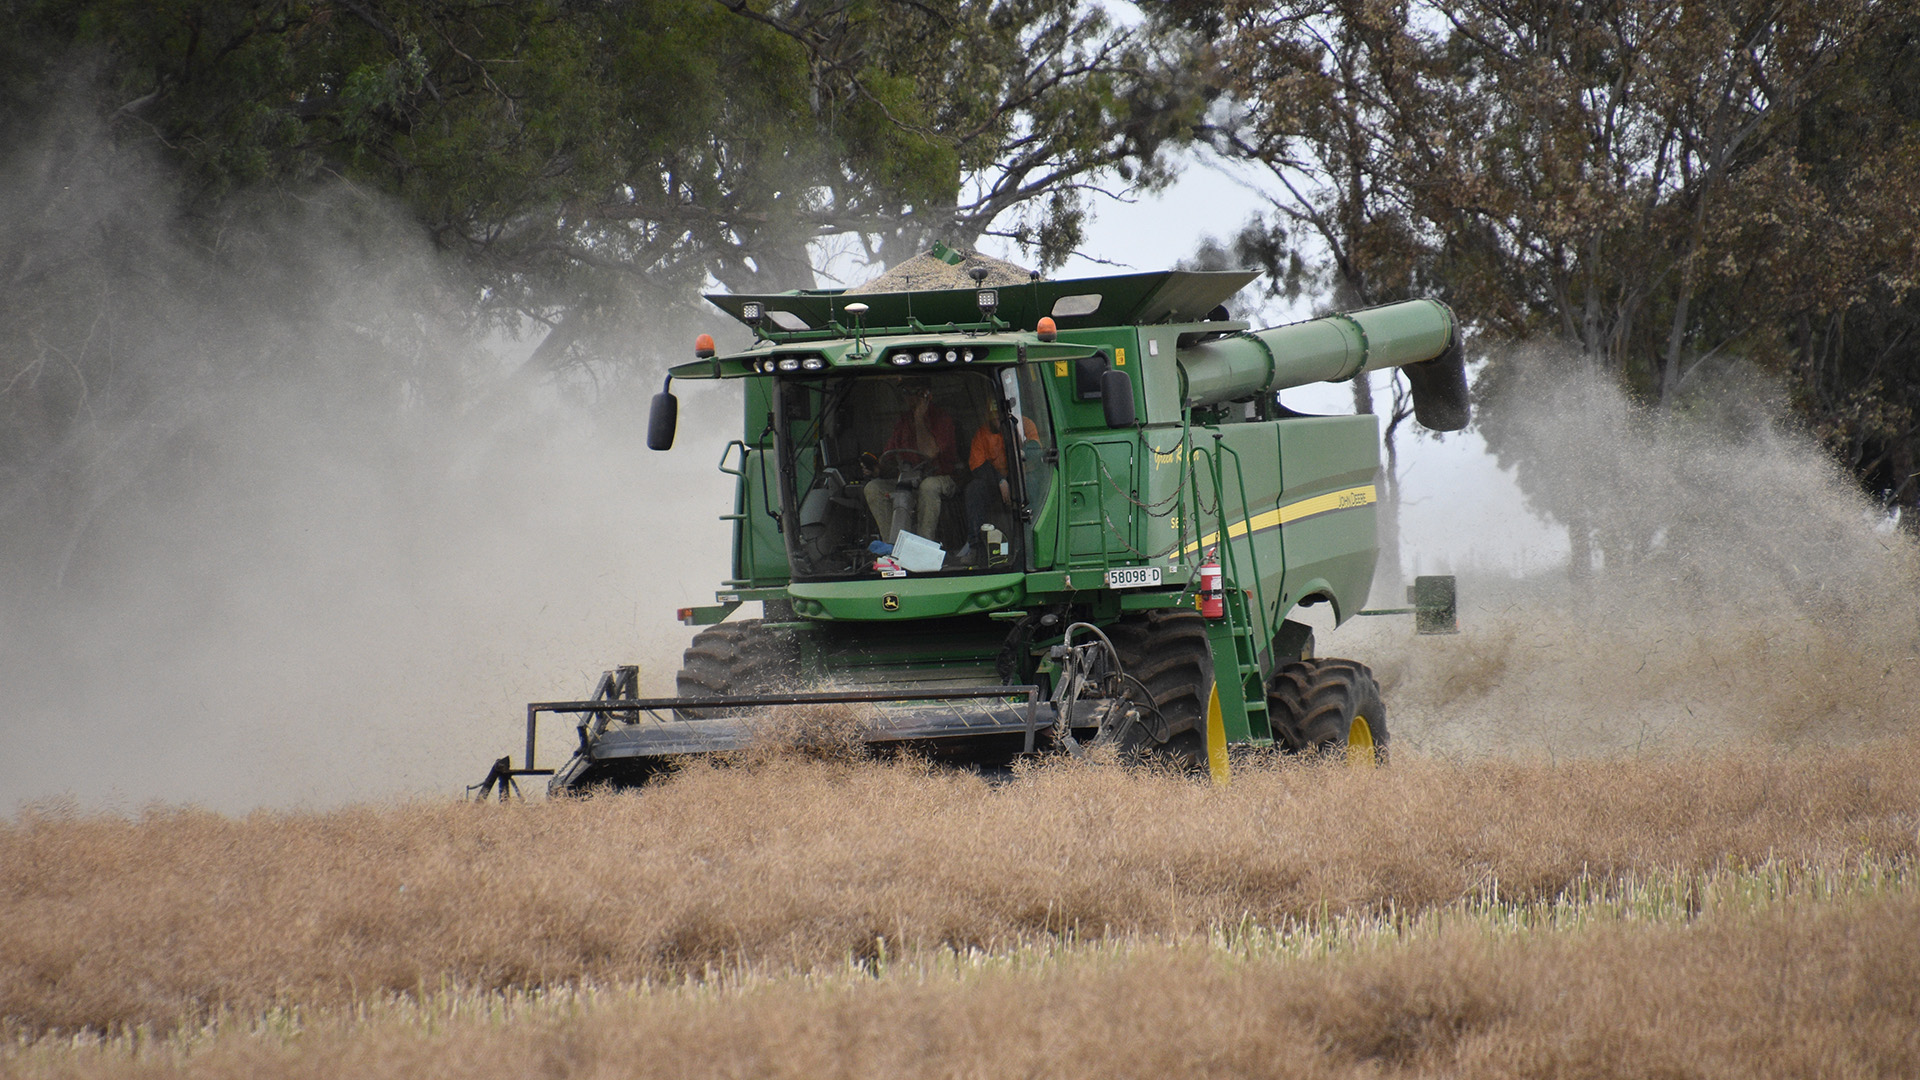 The harvester has been fitted with a whole grain analyser